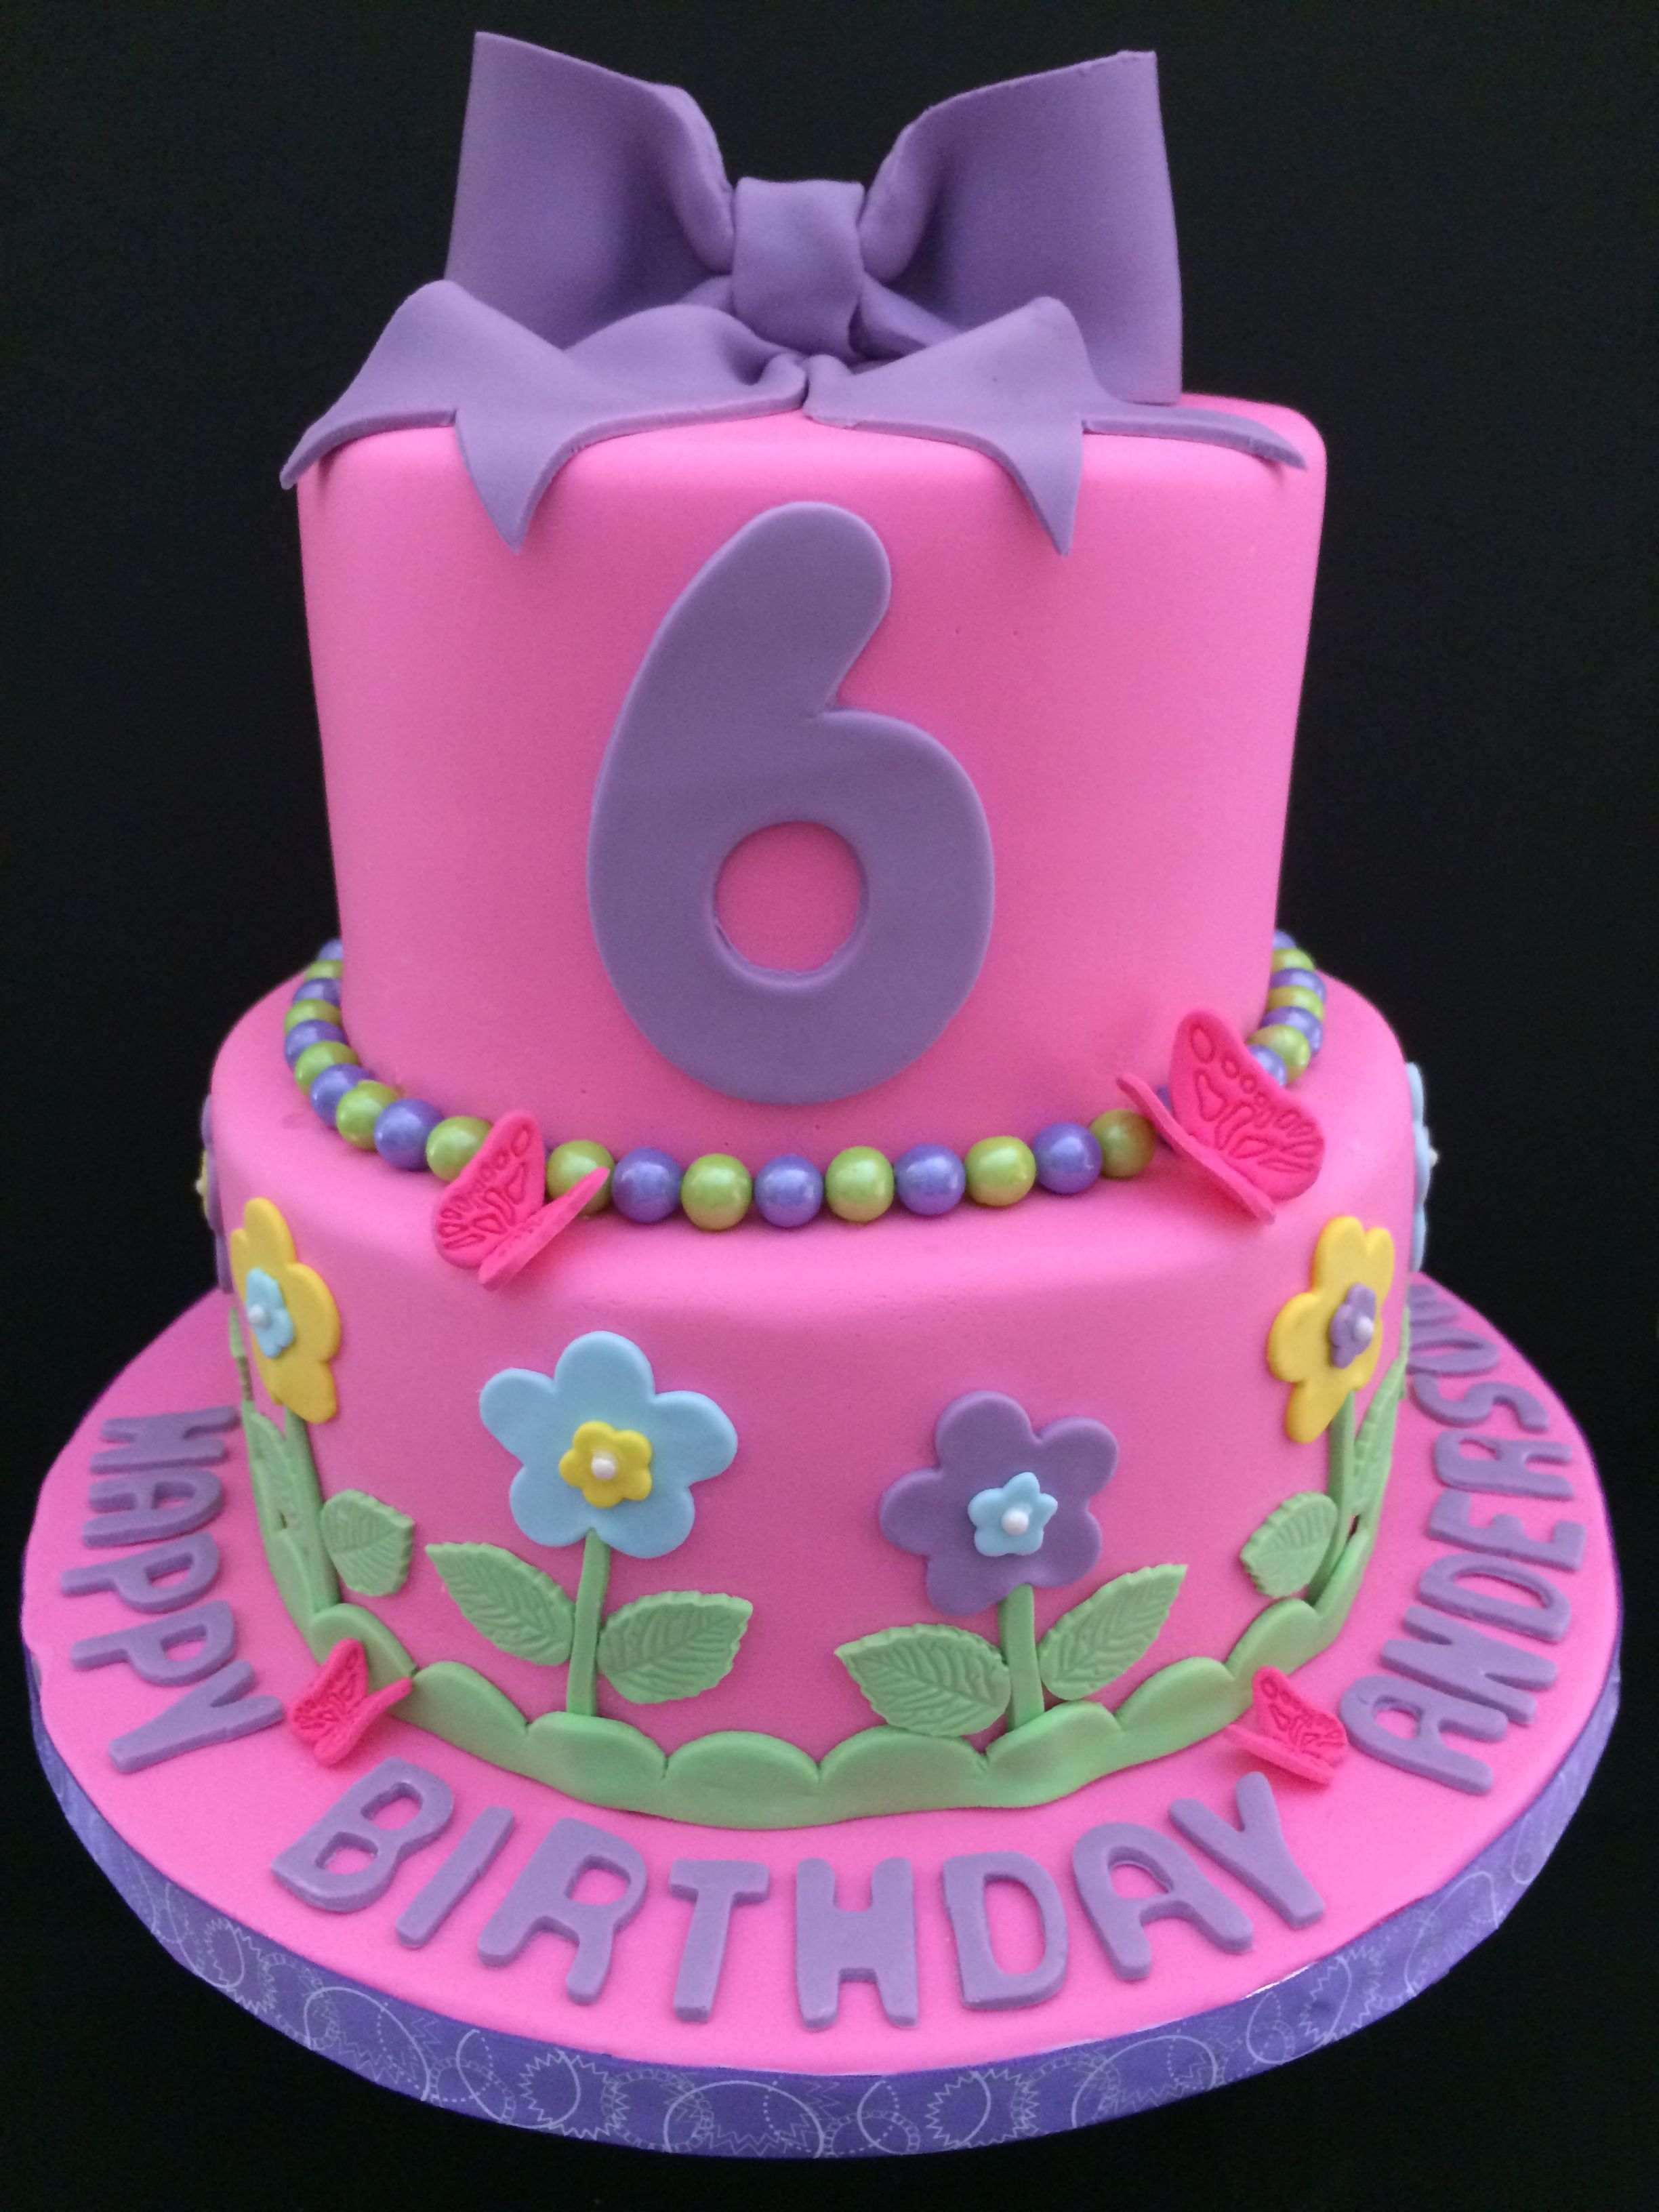 Birthday Cake For A 6 Year Old Girl